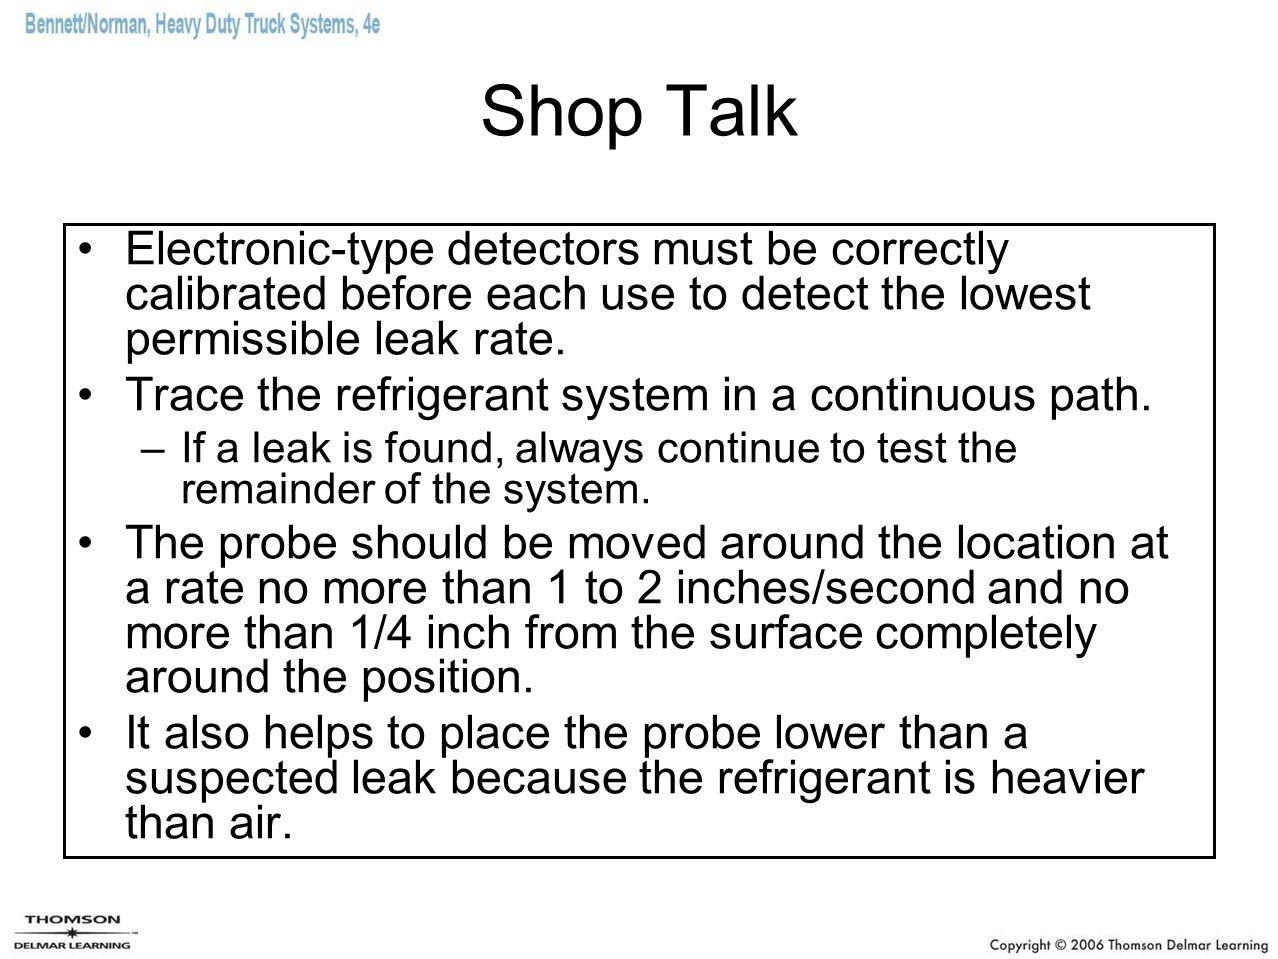 Shop Talk Electronic-type detectors must be correctly calibrated before each use to detect the lowest permissible leak rate.